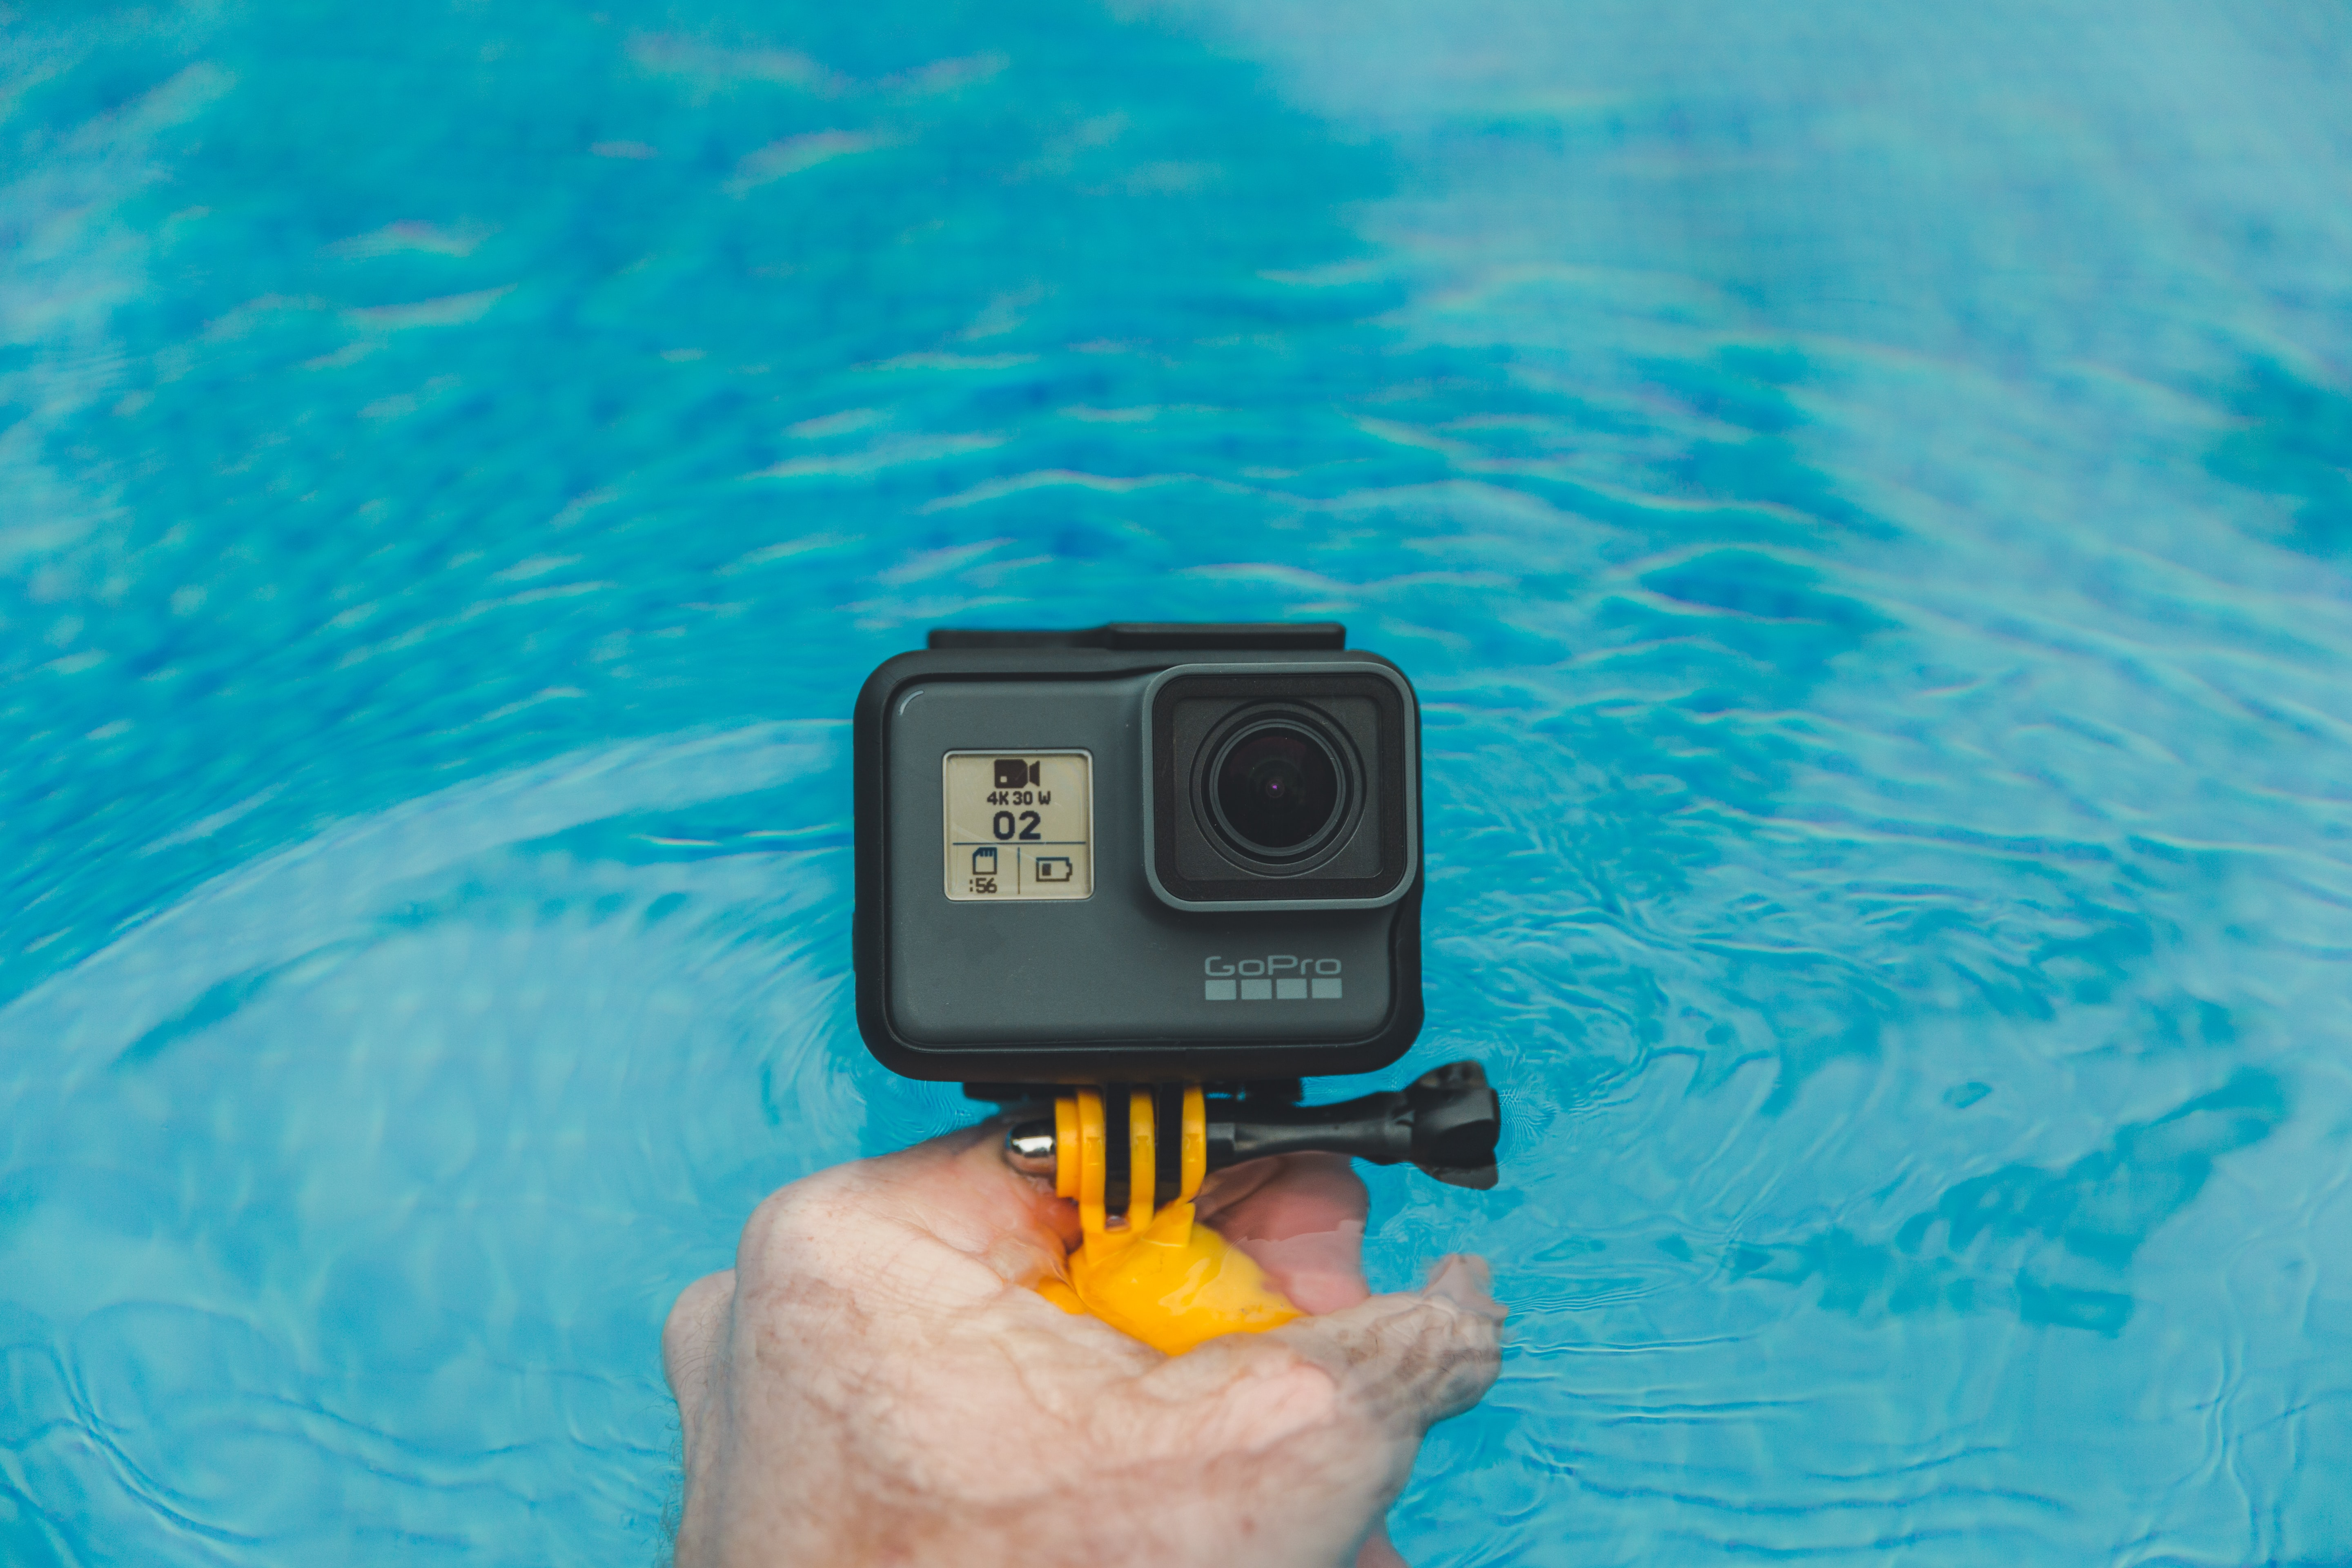 A GoPro camera is being held over the water surface.